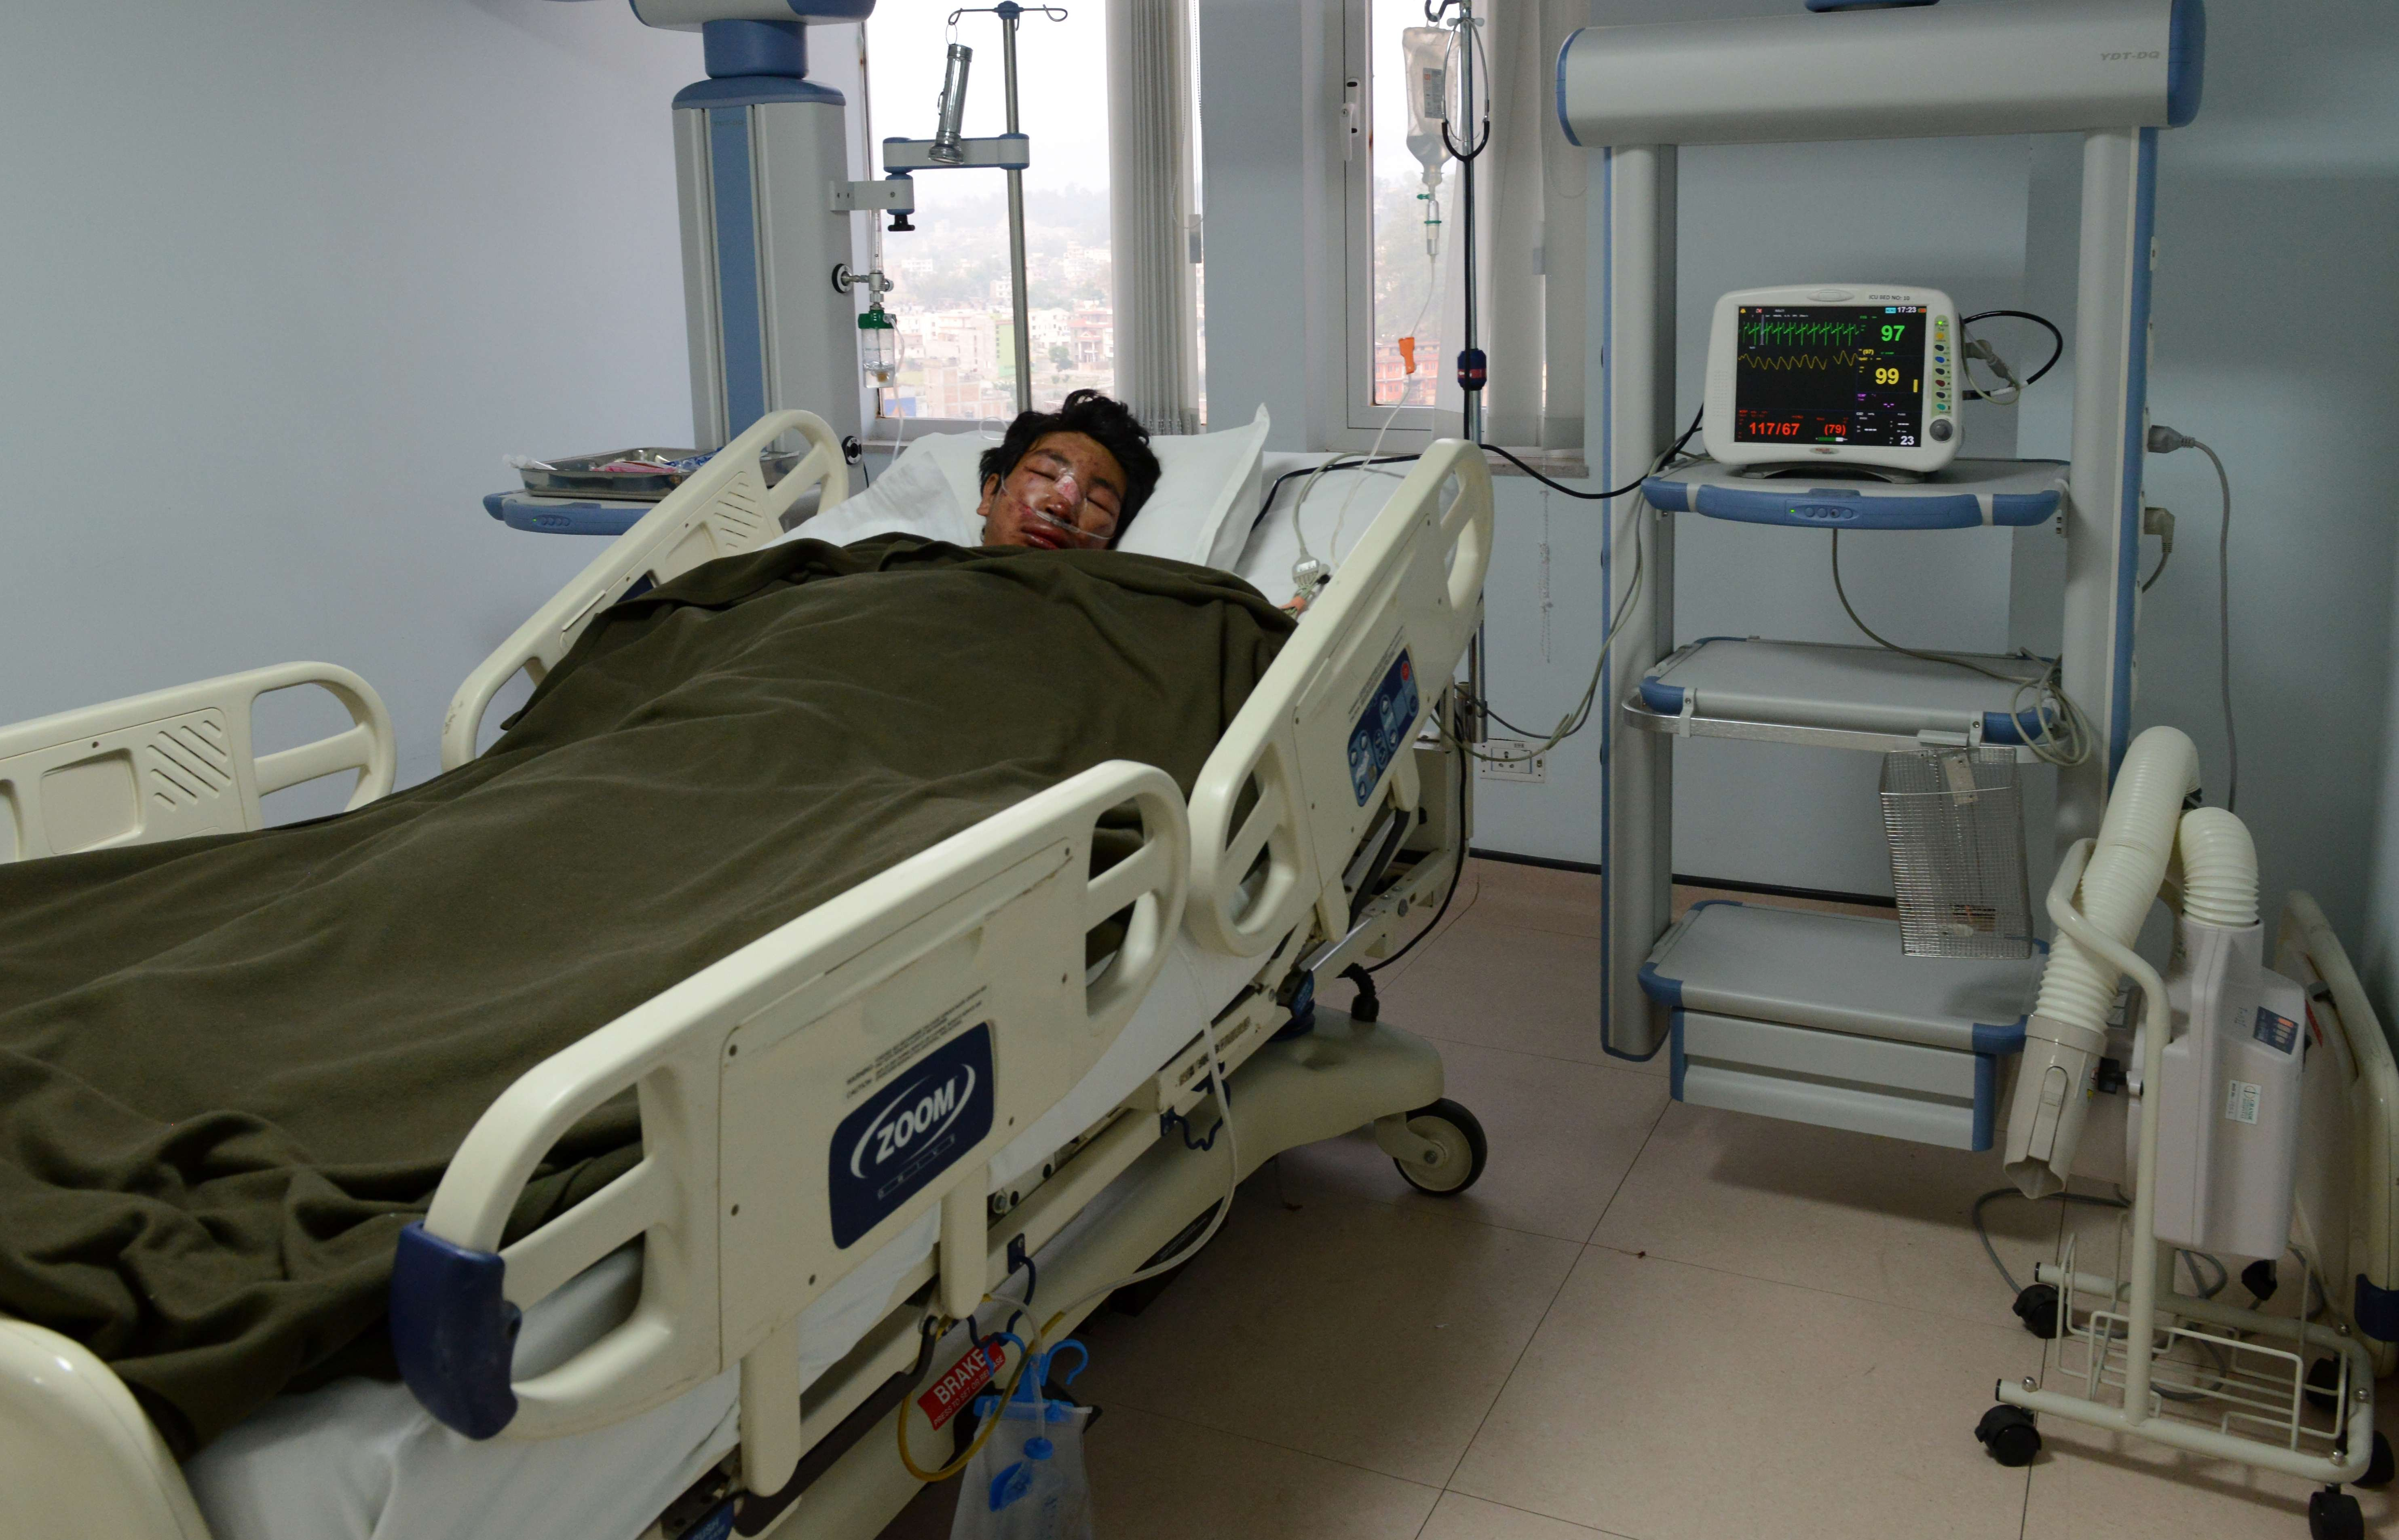 Nepalese mountaineer, Dawa Tashi Sherpa, survivor of the avalanche on Mount Everest, lies in the Intensive Care Unit (ICU) at Grandi International Hospital in Kathmandu on April 18, 2014.